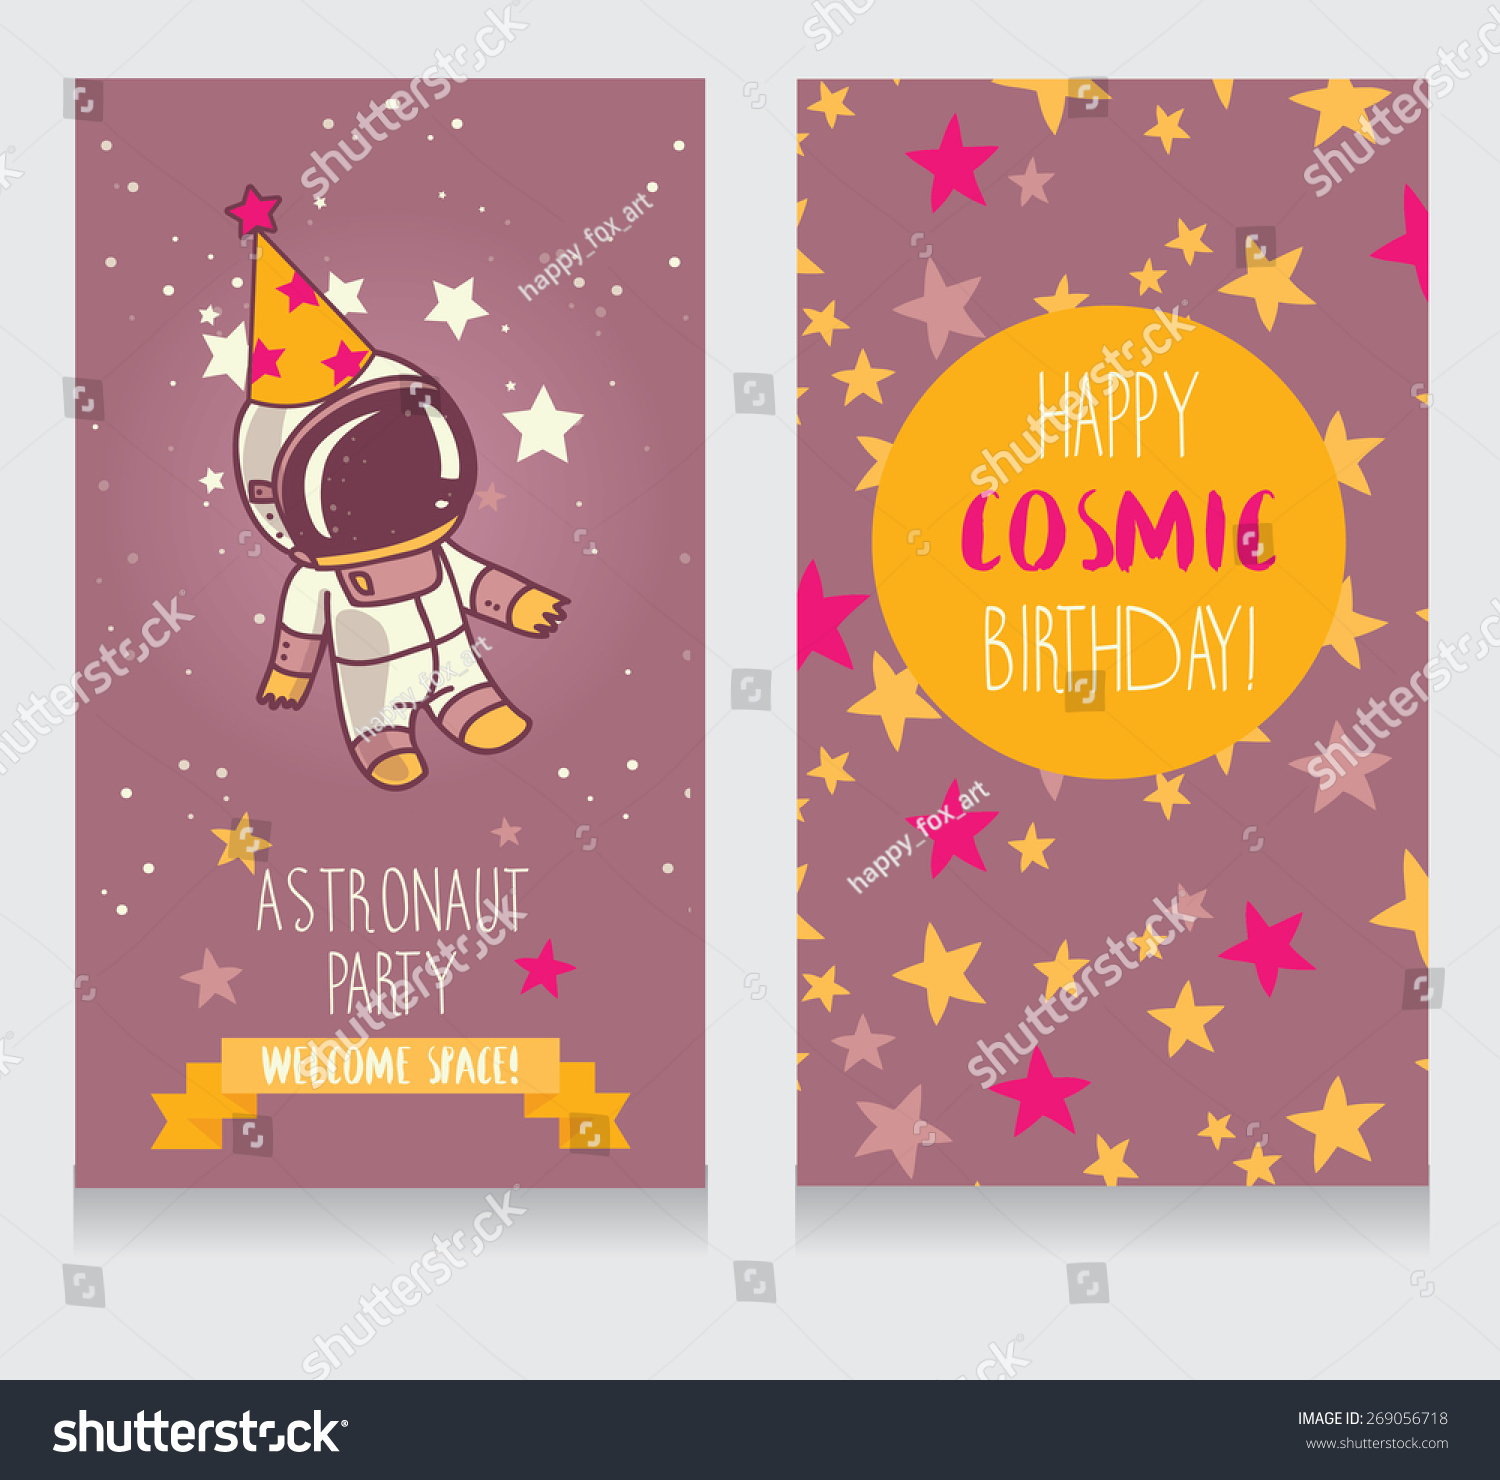 Cute Astronaut Party Hat On Starry Stock Vector Royalty Free